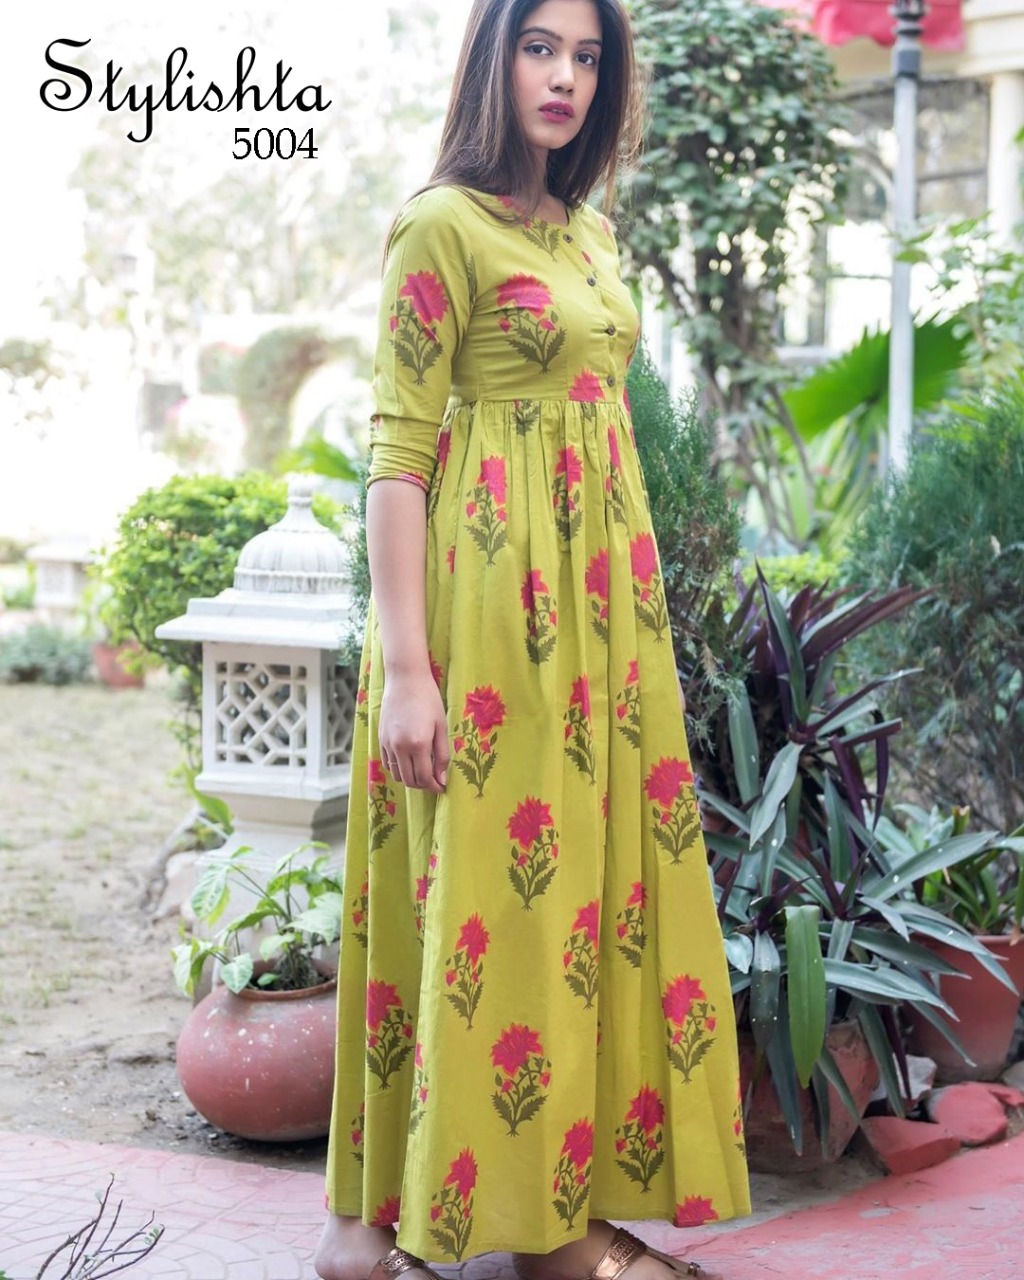 Tejaswee Stylishta Vol 3 Kurti Wholesale Catalog 6 Pcs 11 - Tejaswee Stylishta Vol 3 Kurti Wholesale Catalog 6 Pcs